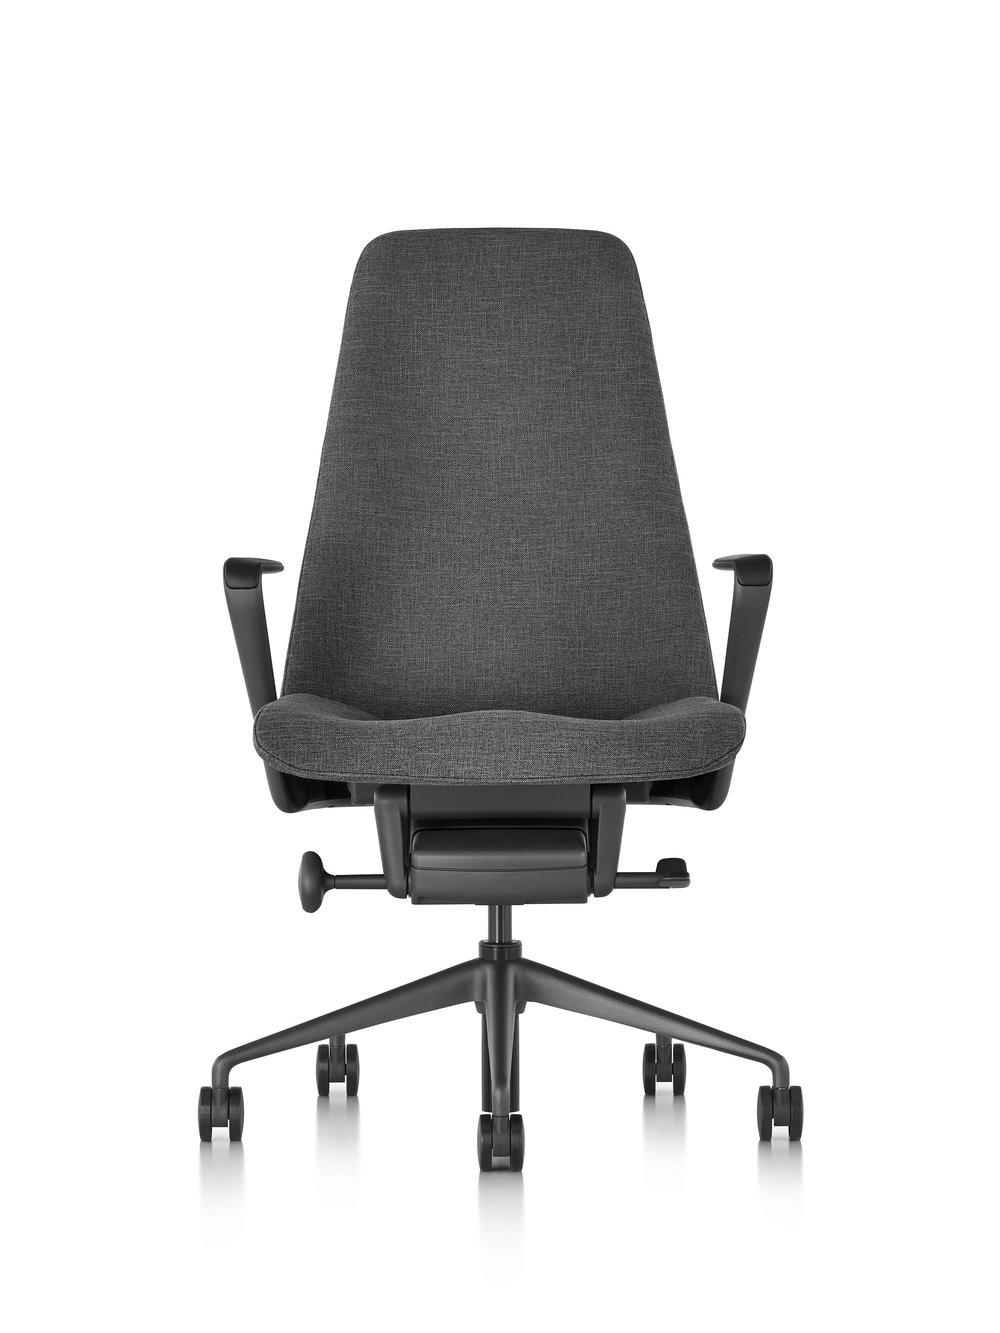 ig_prd_ovw_taper_chair_04.jpg